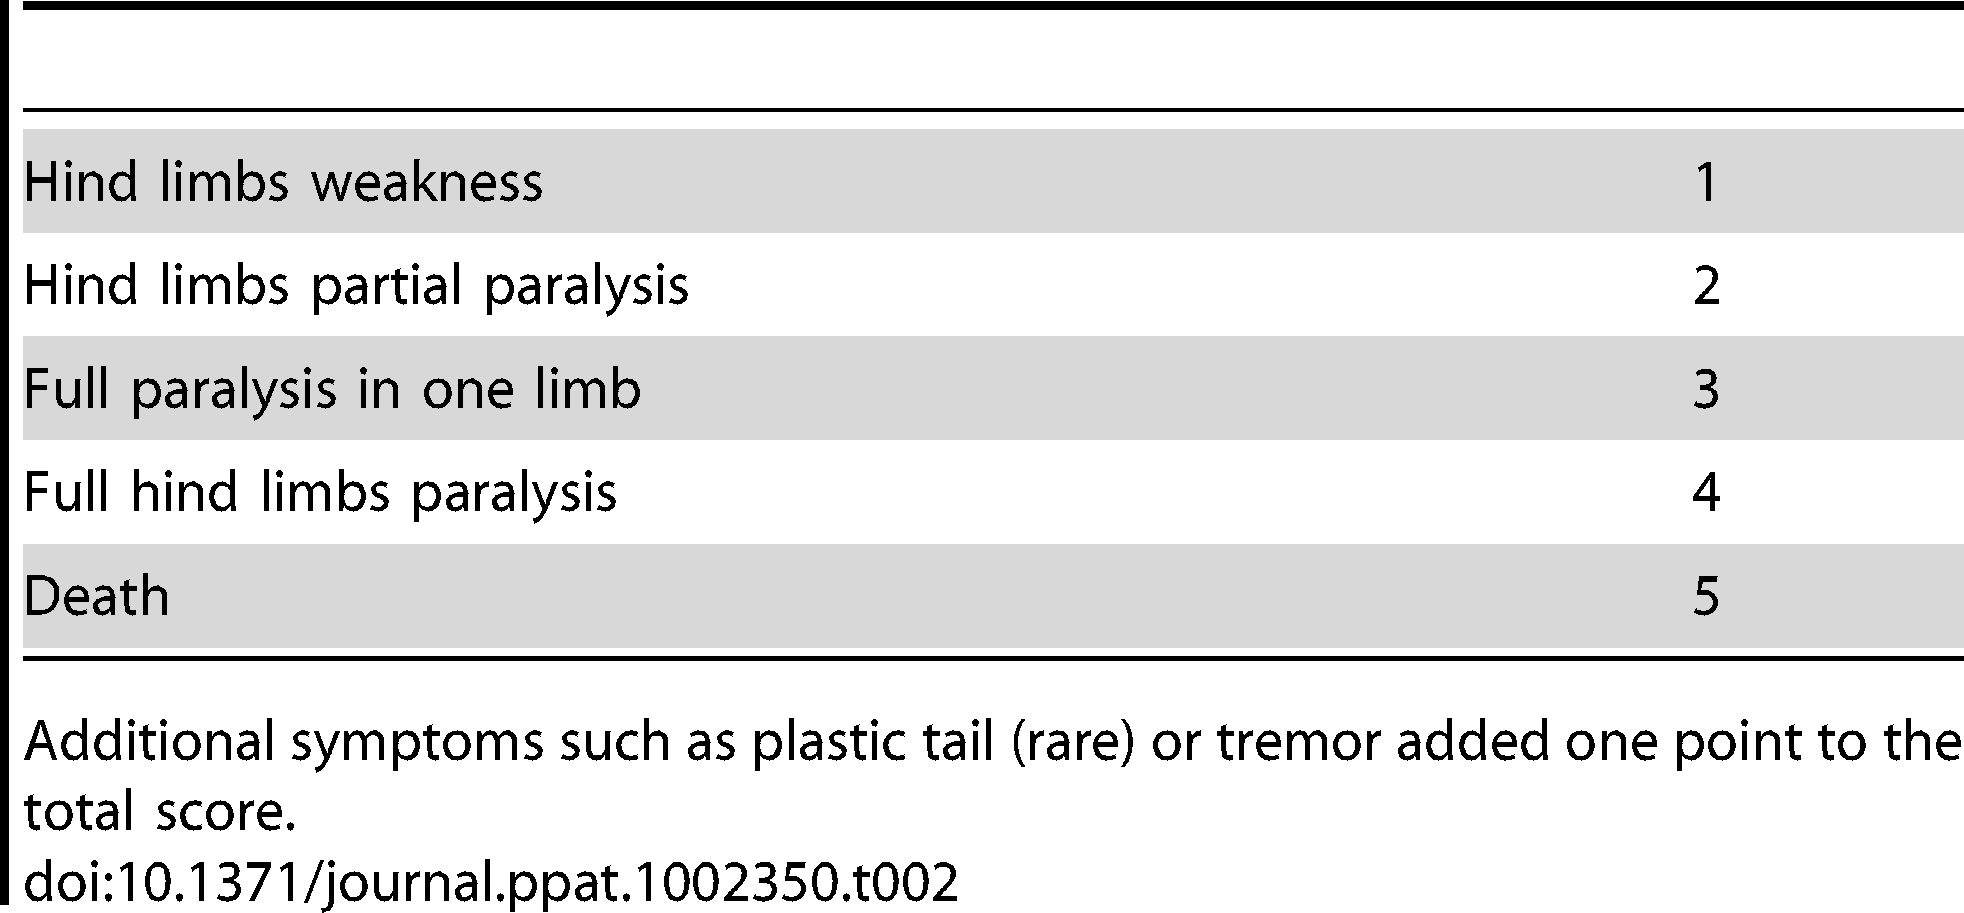 Score of disease severity by clinical signs.